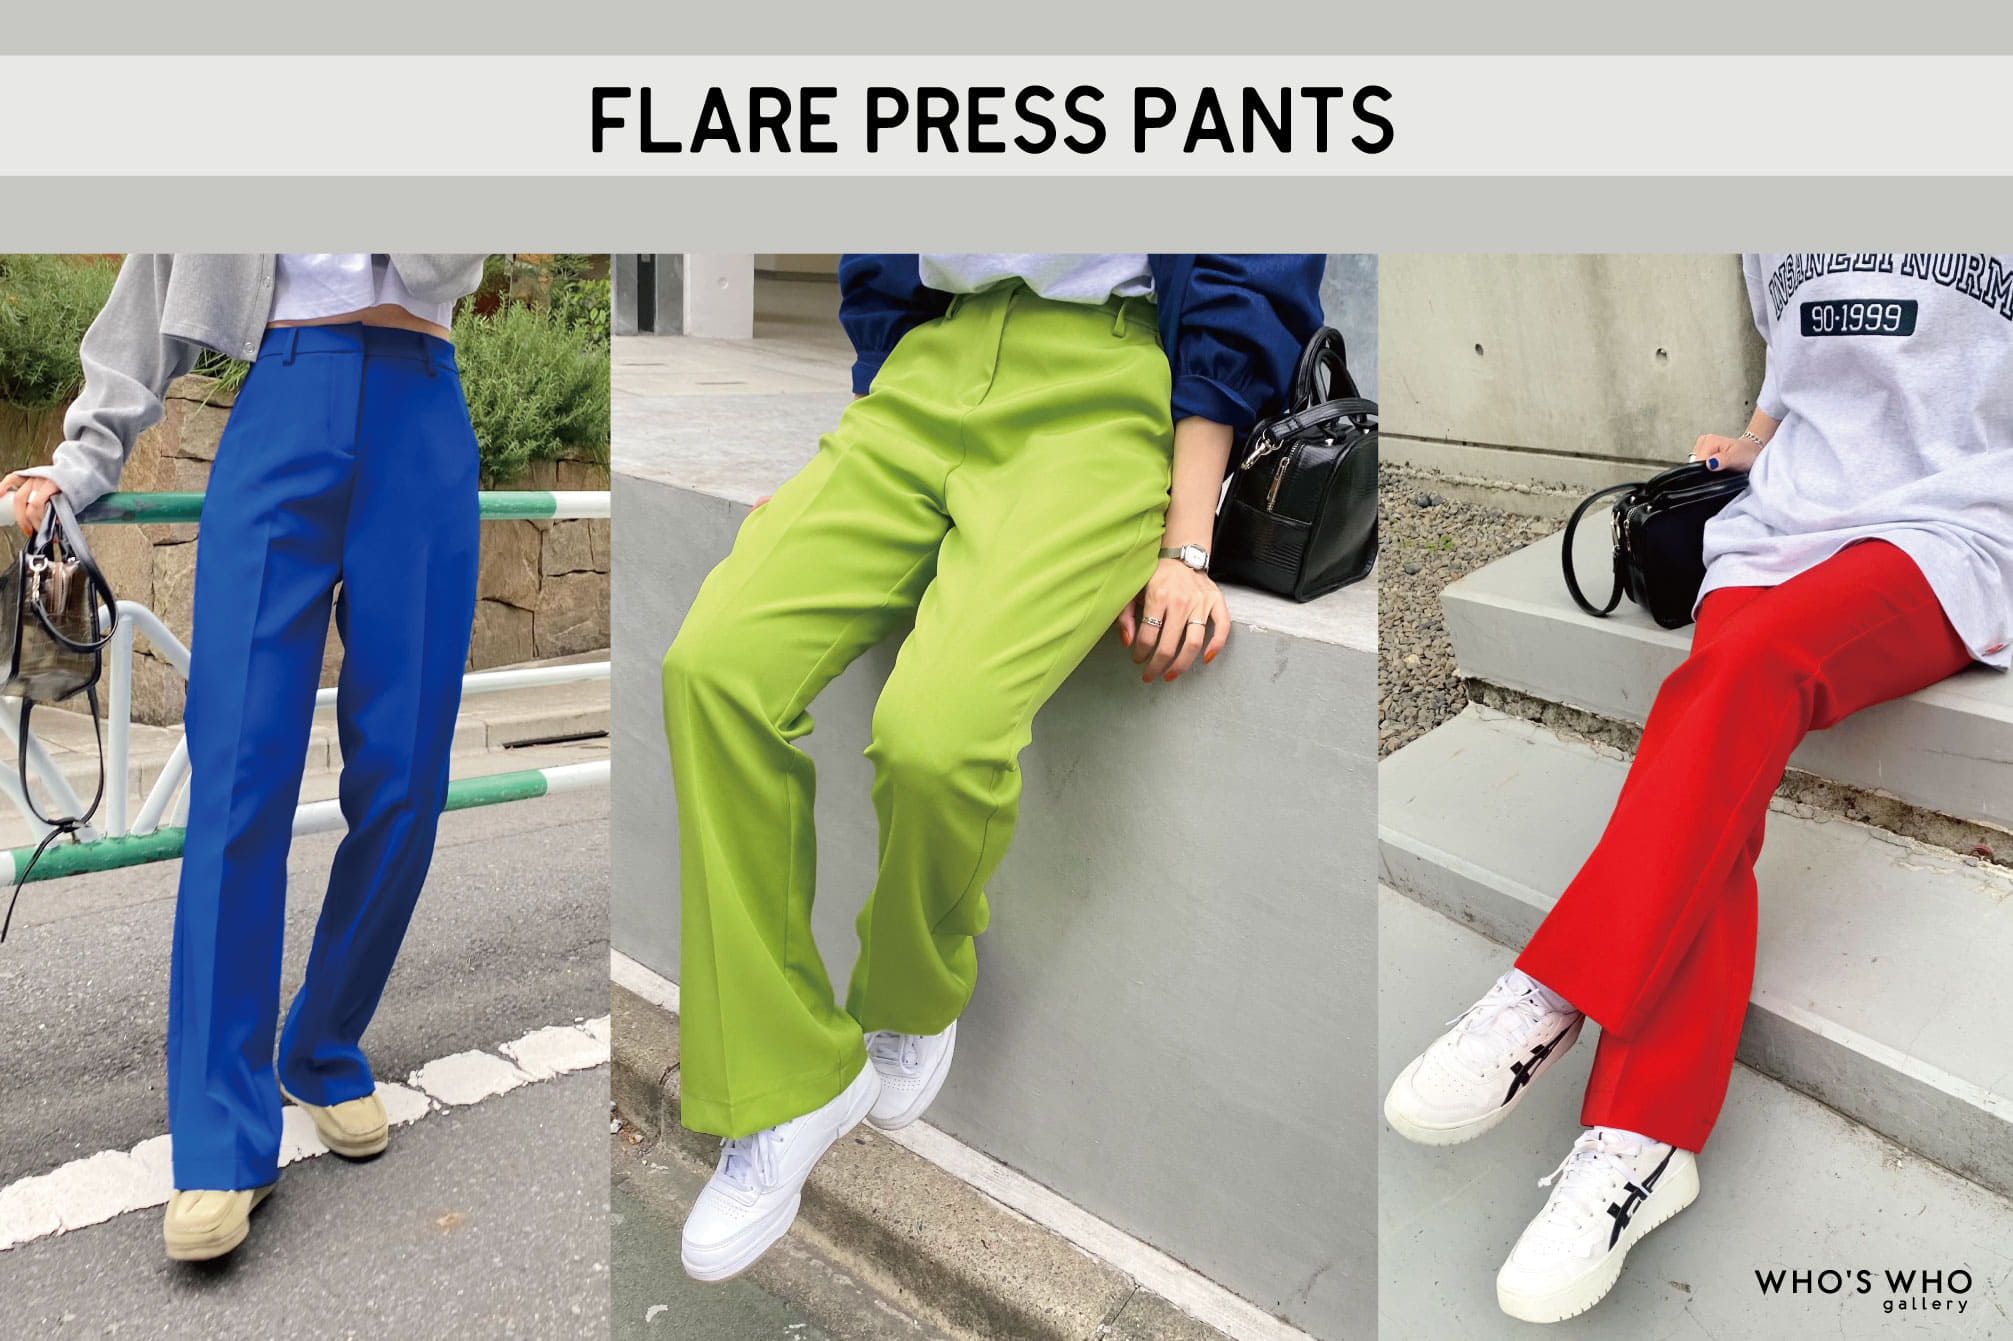 WHO'S WHO gallery NEW COLOR【FLARE PRESS PANTS】